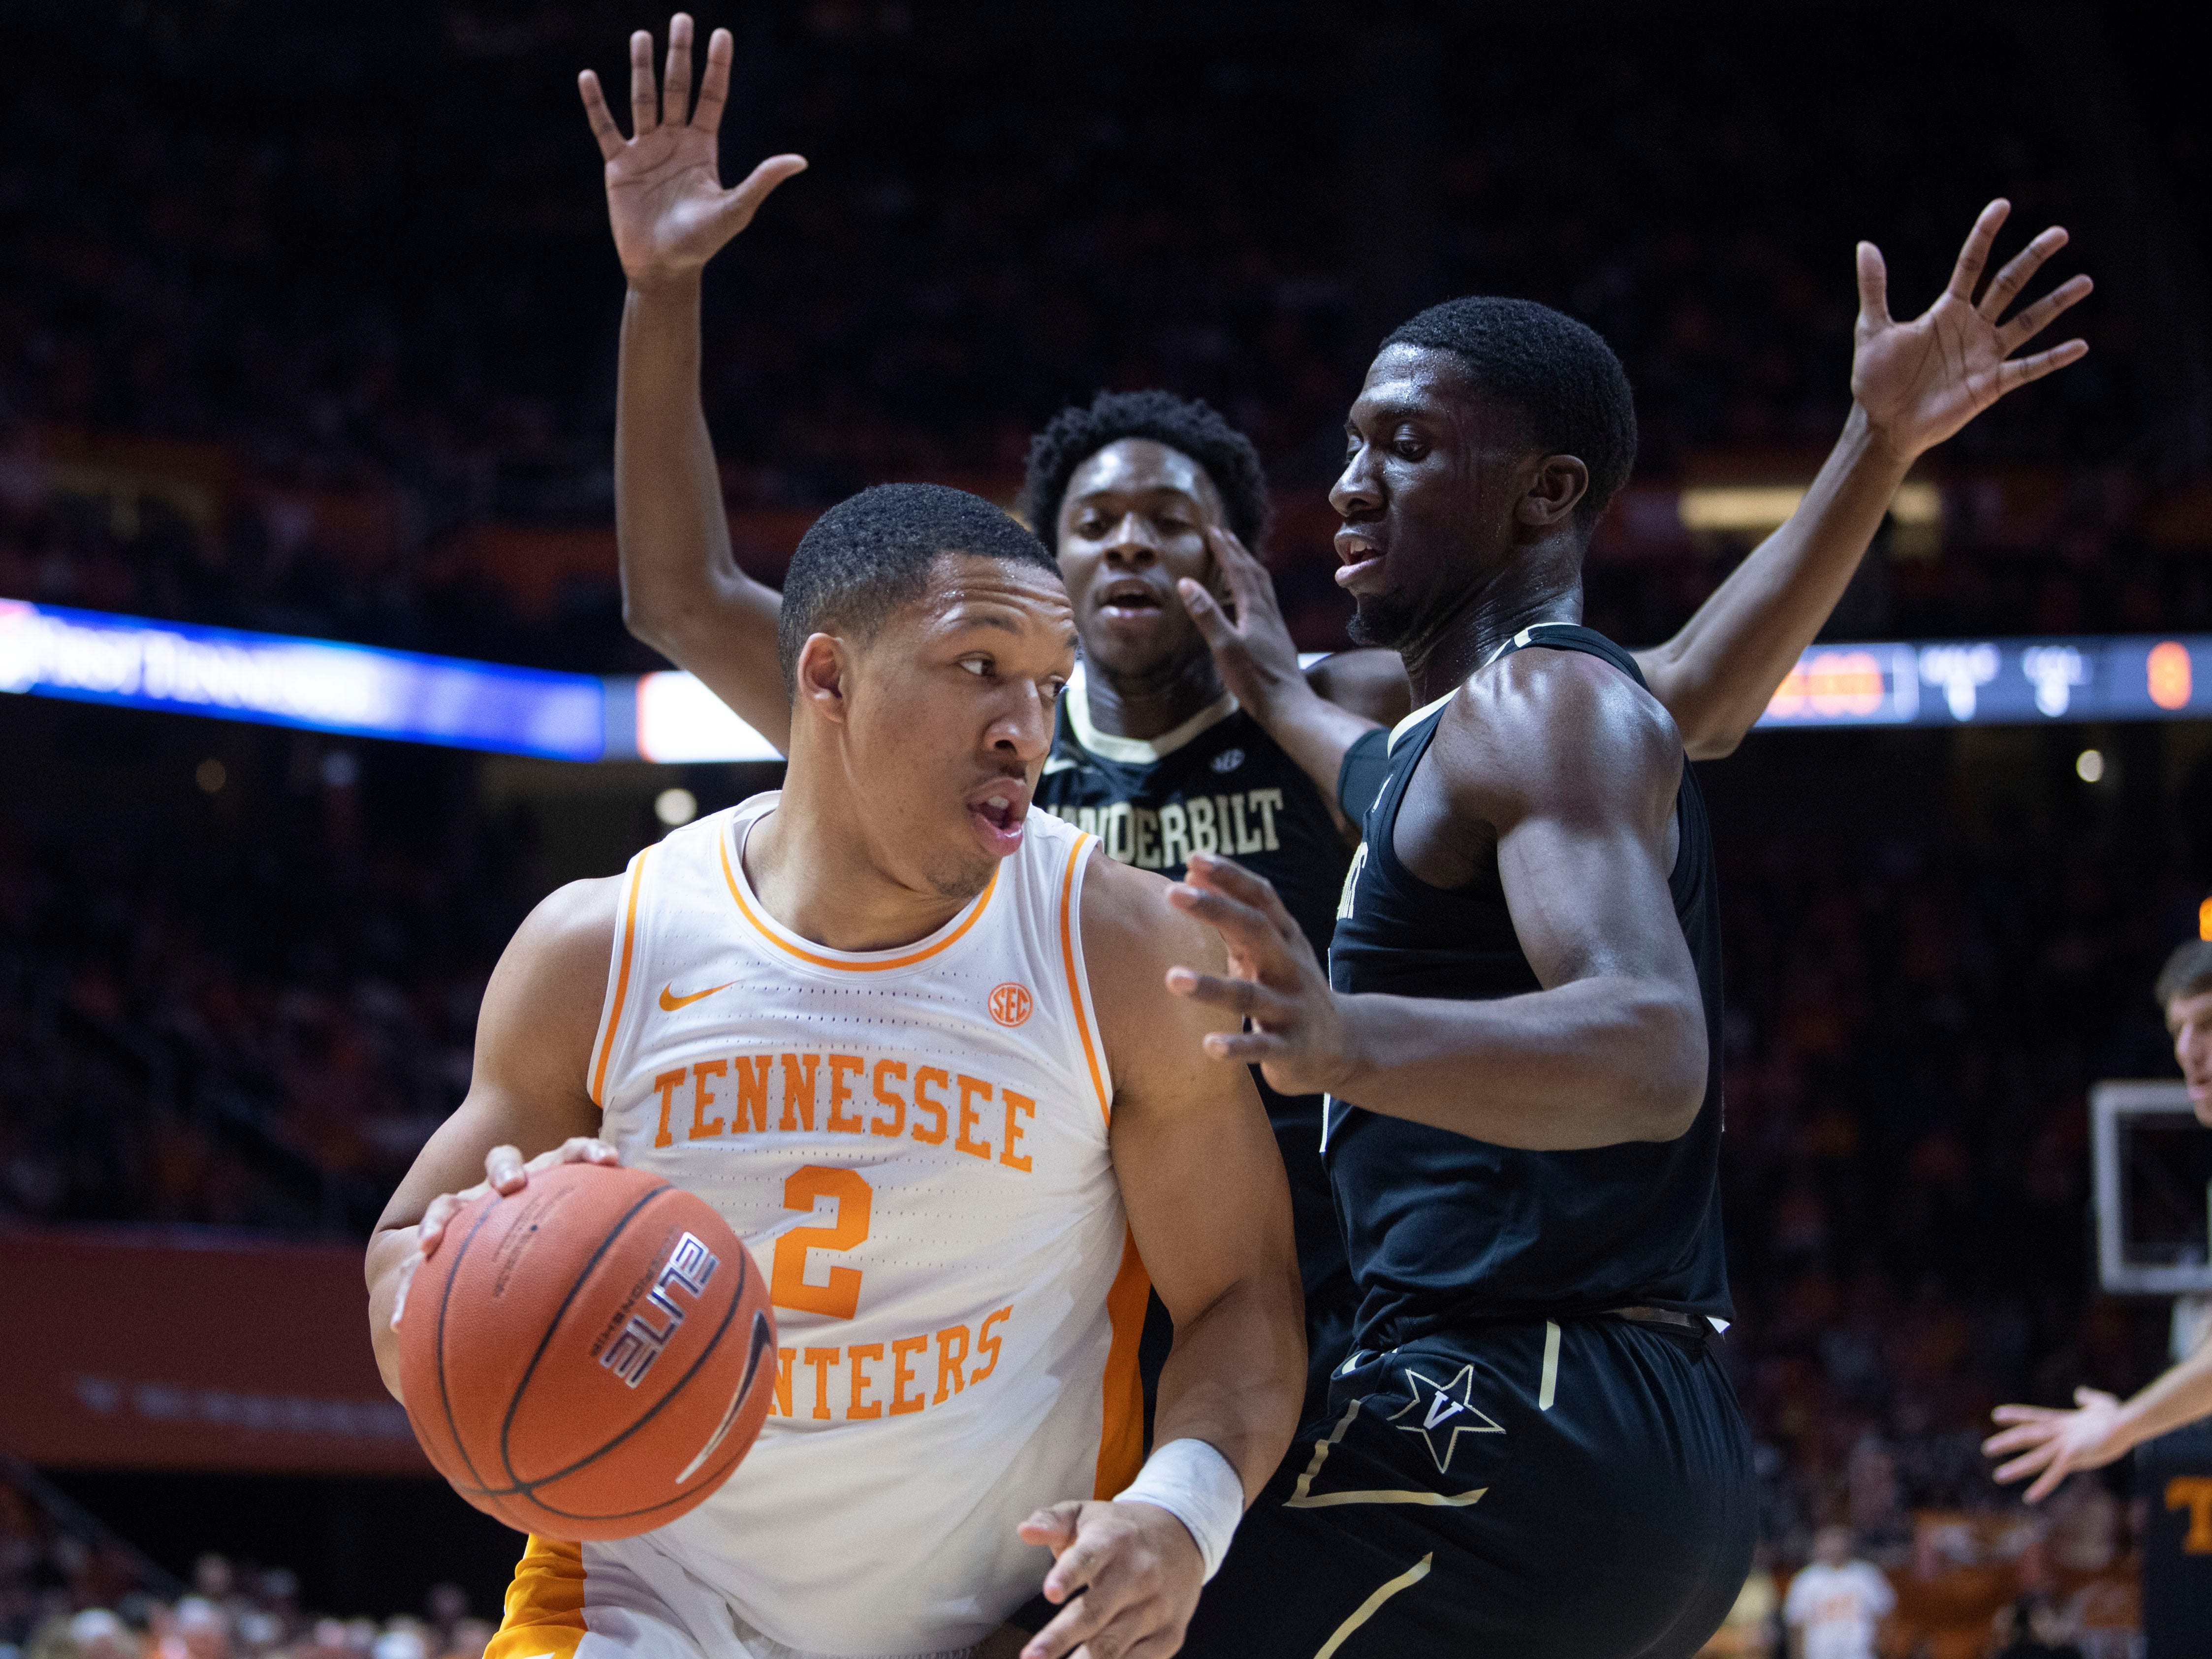 Tennessee's Grant Williams (2) is guarded by Vanderbilt's Clevon Brown (15) and Simisola Shittu on Tuesday, February 19, 2019.